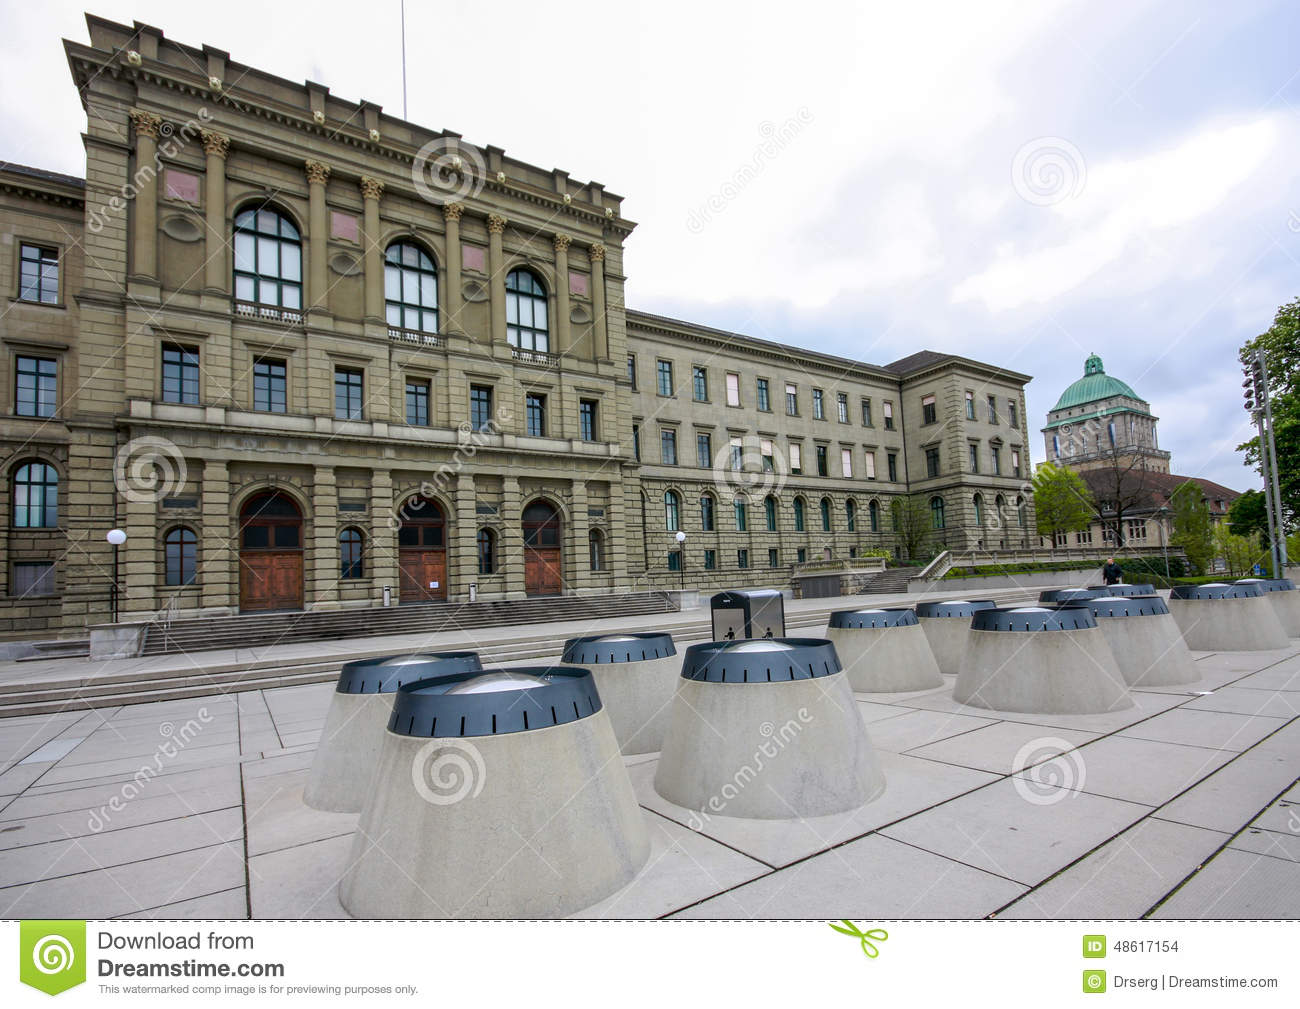 Swiss Federal Institute of Technology building in Zurich